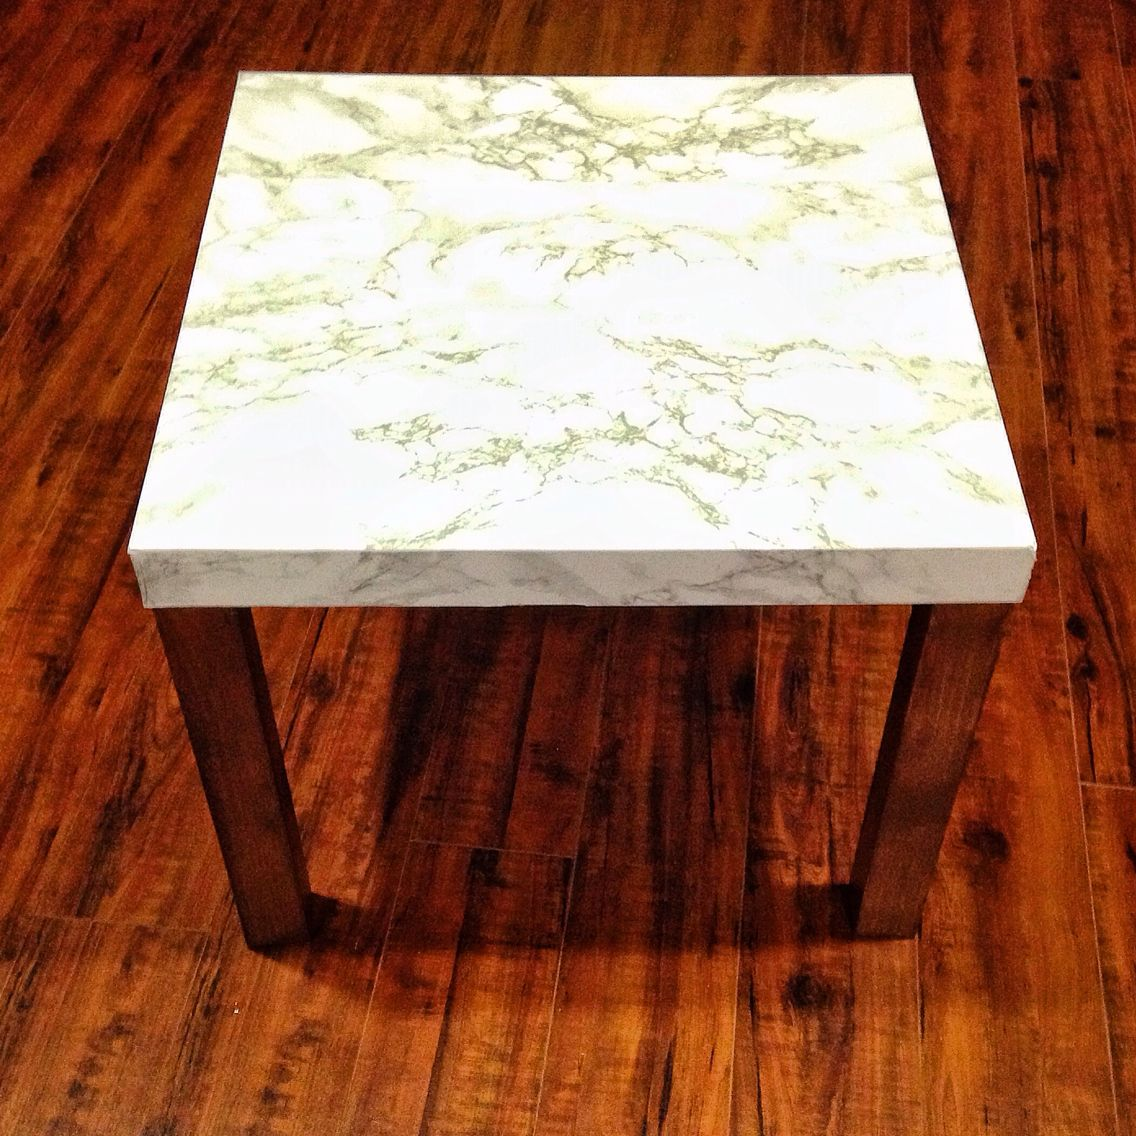 Ikea Lack turned to marble accent table | Dream Home, Much ...